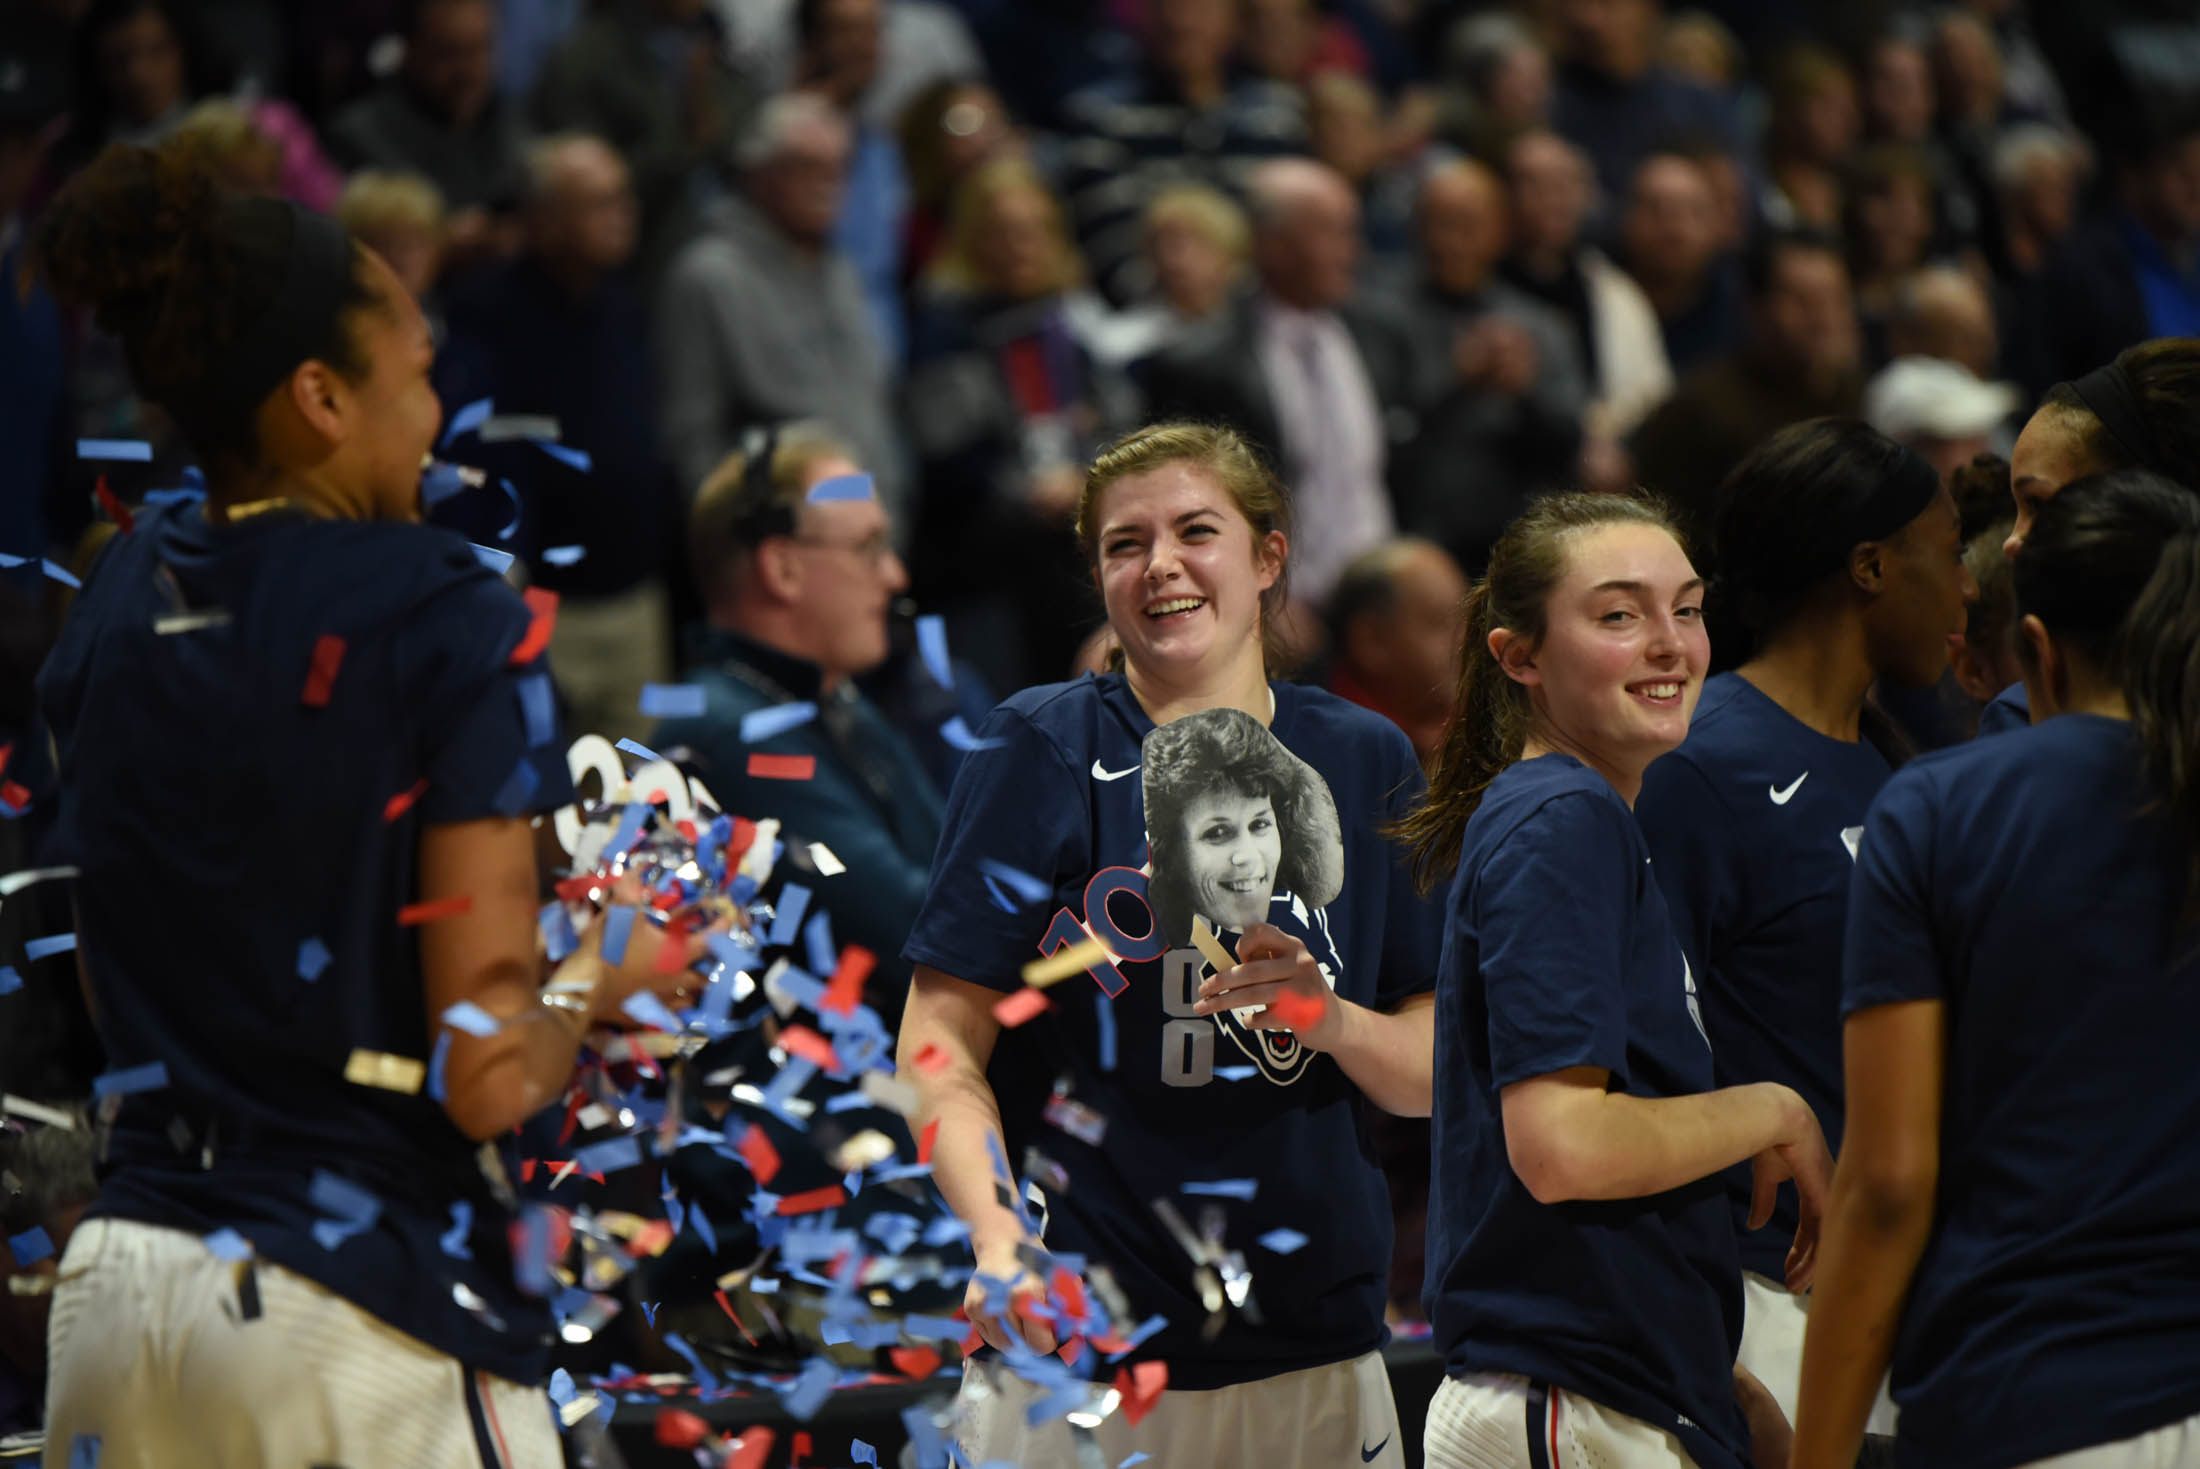 Kyla Irwin and Azurá Stevens celebrate the win with confetti. (Charlotte Lao/The Daily Campus)